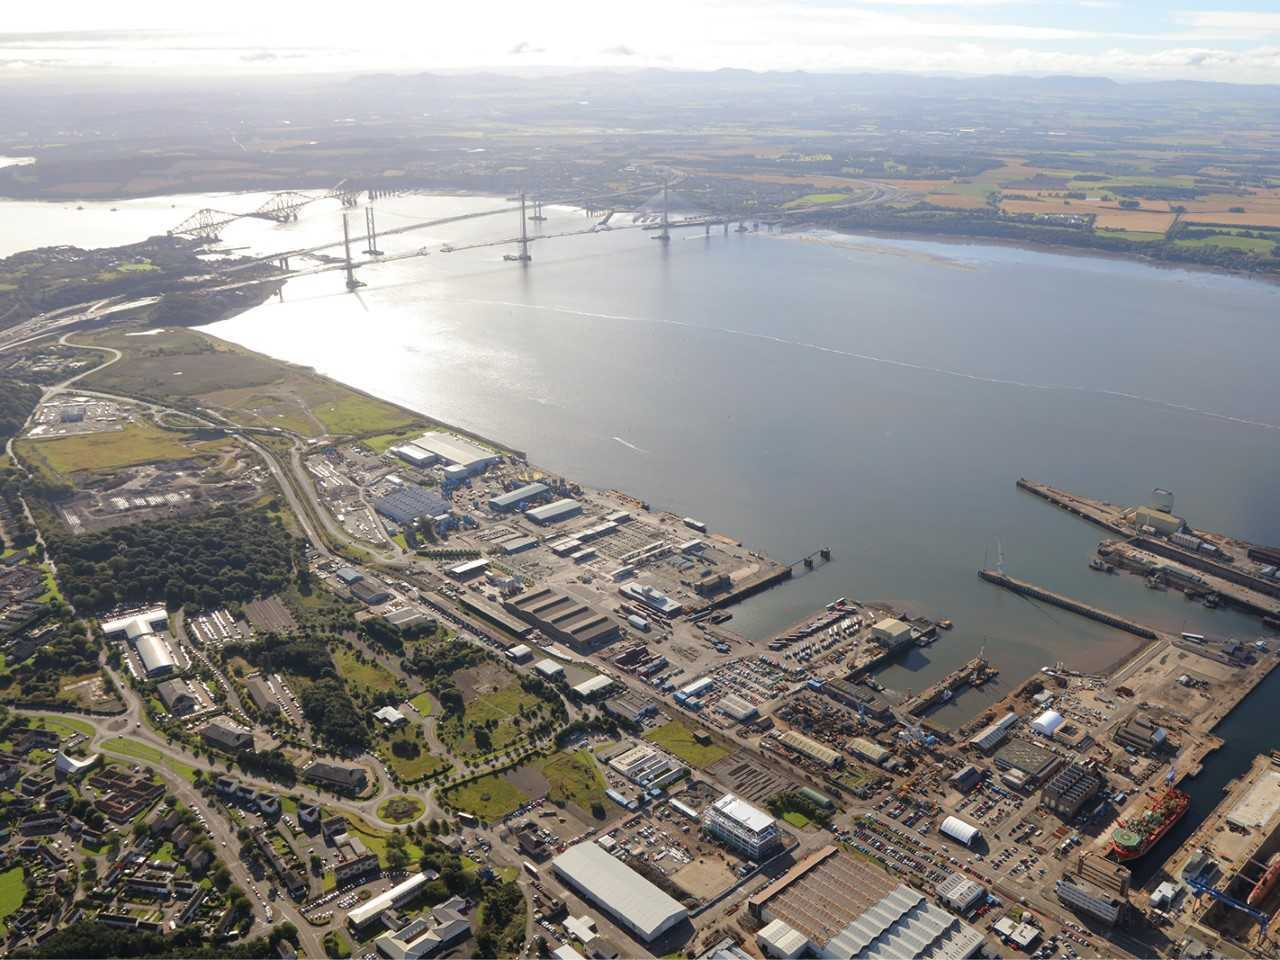 Rosyth sees promising plans linking Scotland with The Netherlands